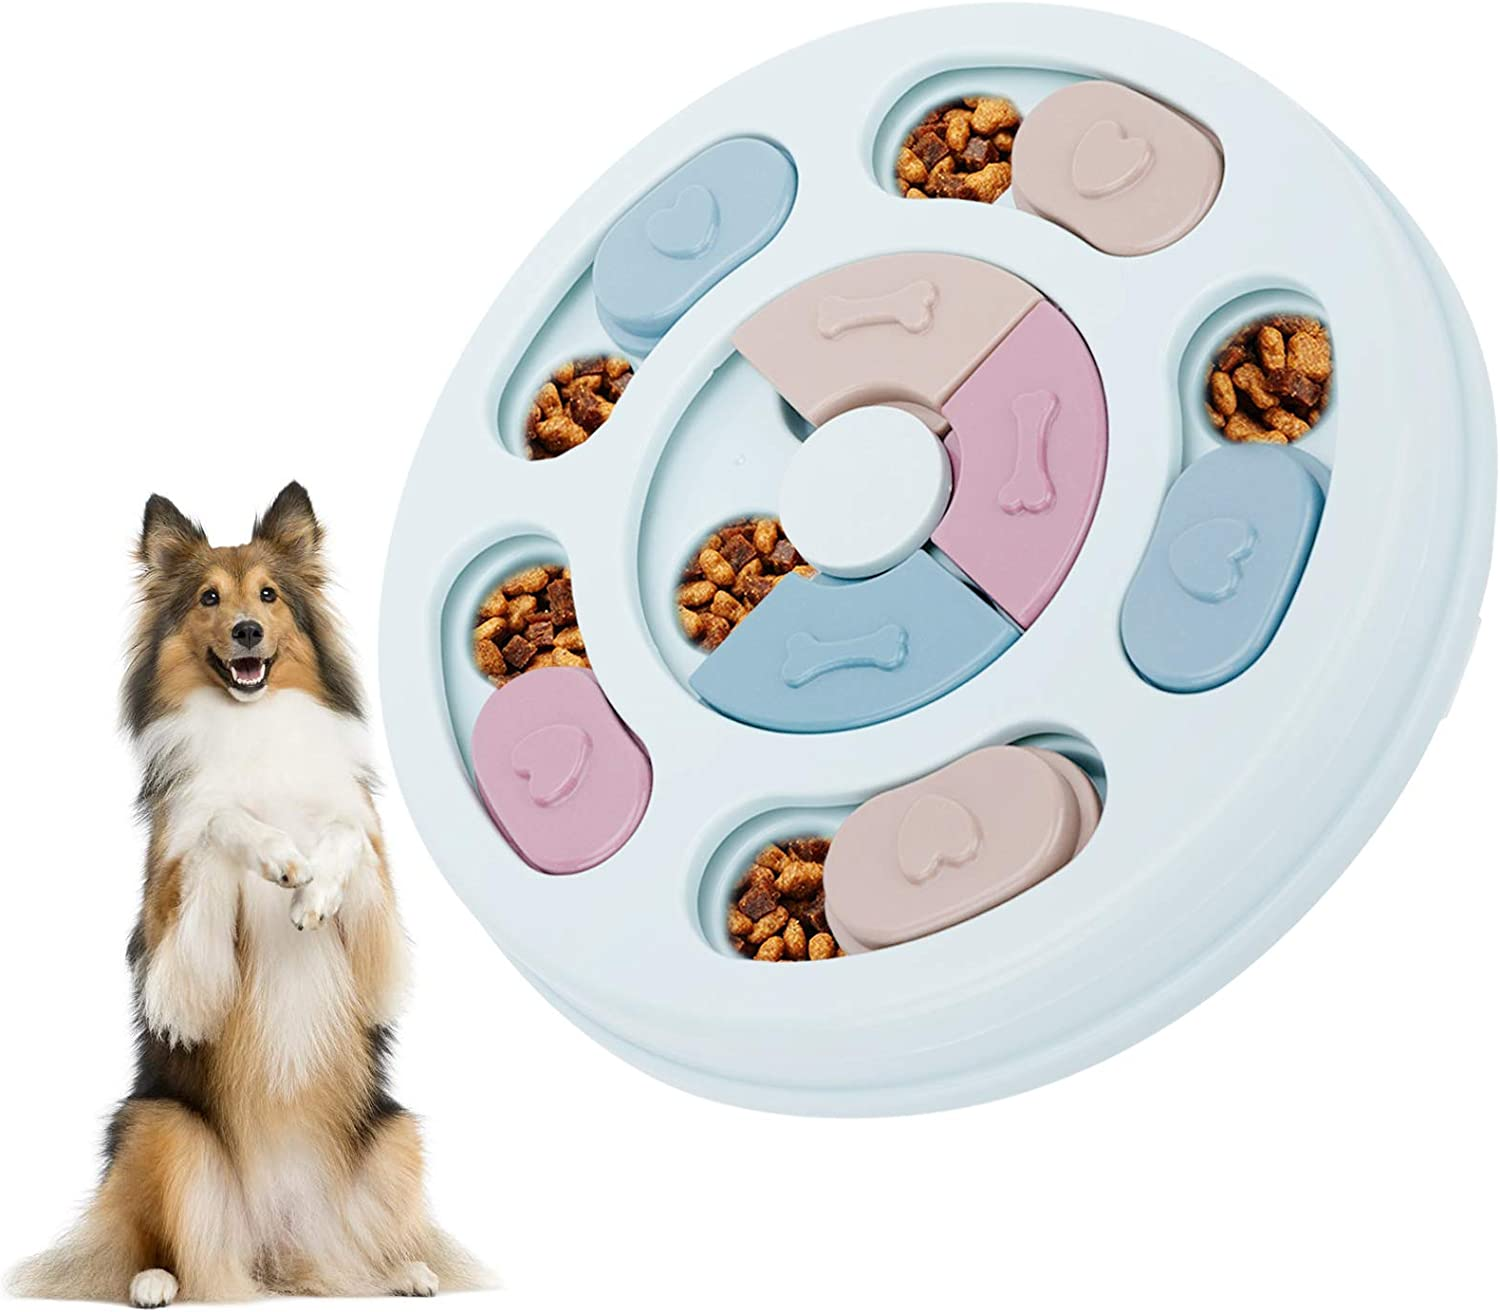 Dog Puzzle Toys, Interactive Puzzle Game Feeder Puppy Treat Training Food Slow Dispenser for Pet Prevent Boredom and Upset, IQ Training & Mental Enrichment